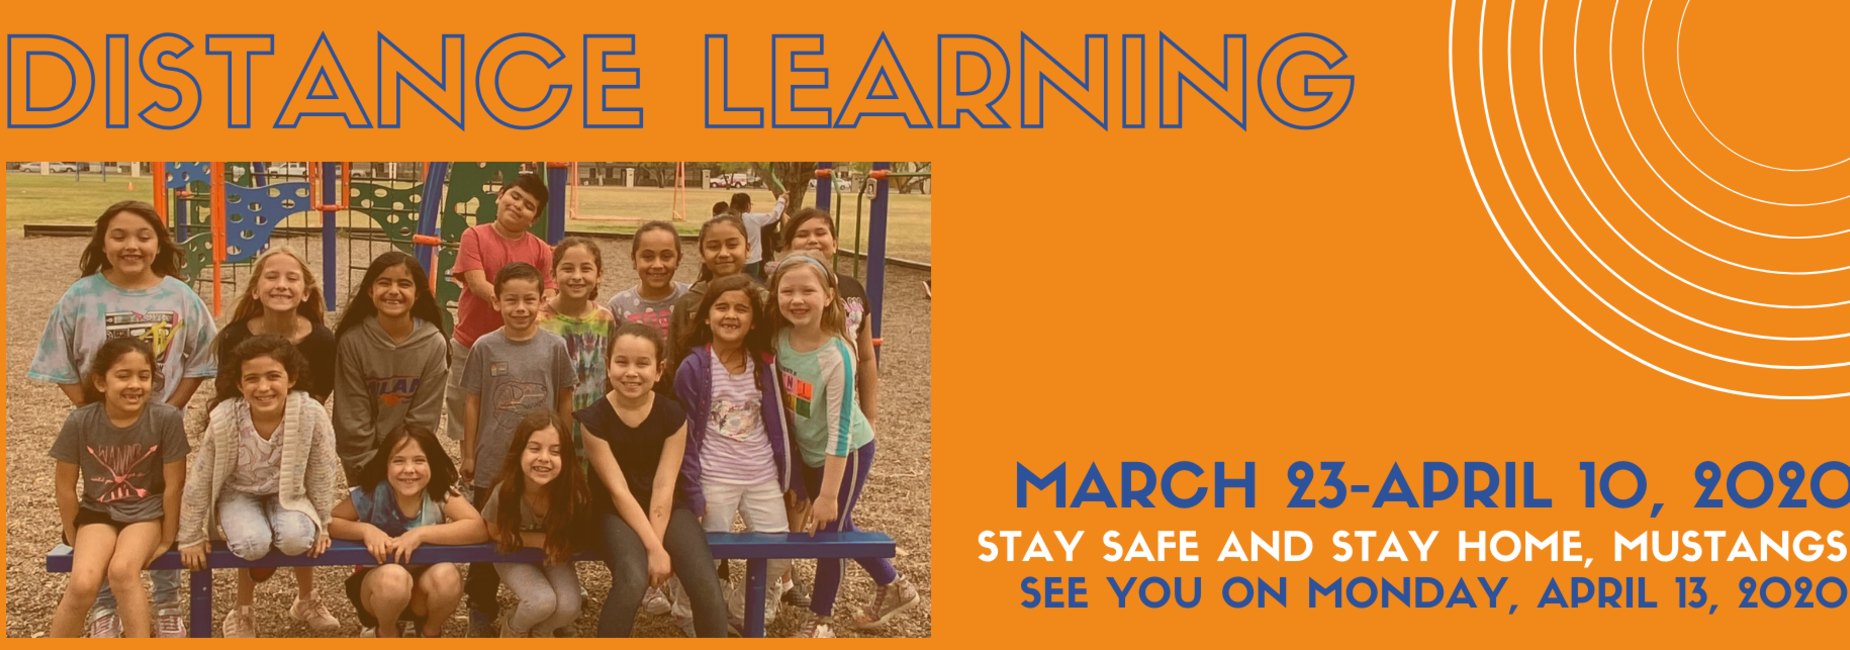 Distance Learning, March 23-April 10, 2020